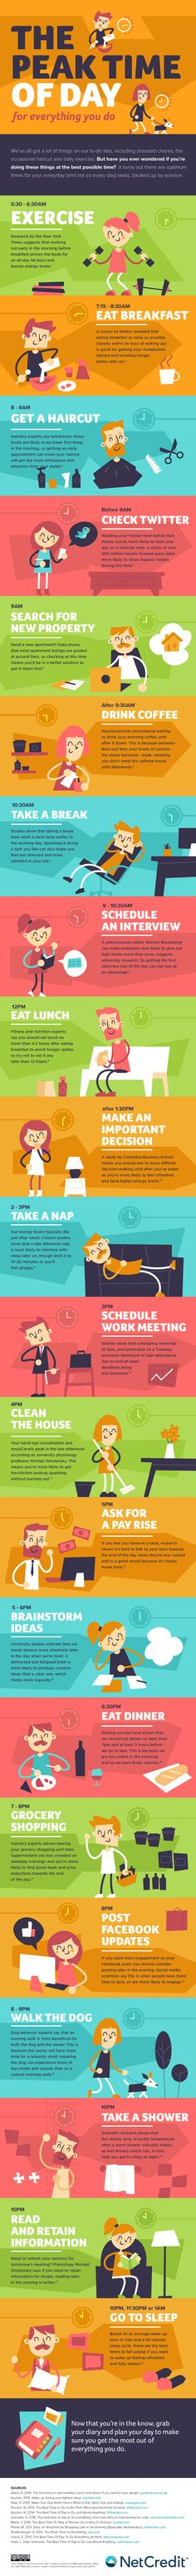 The Peak Time of Day for Everything You Do - #infographic